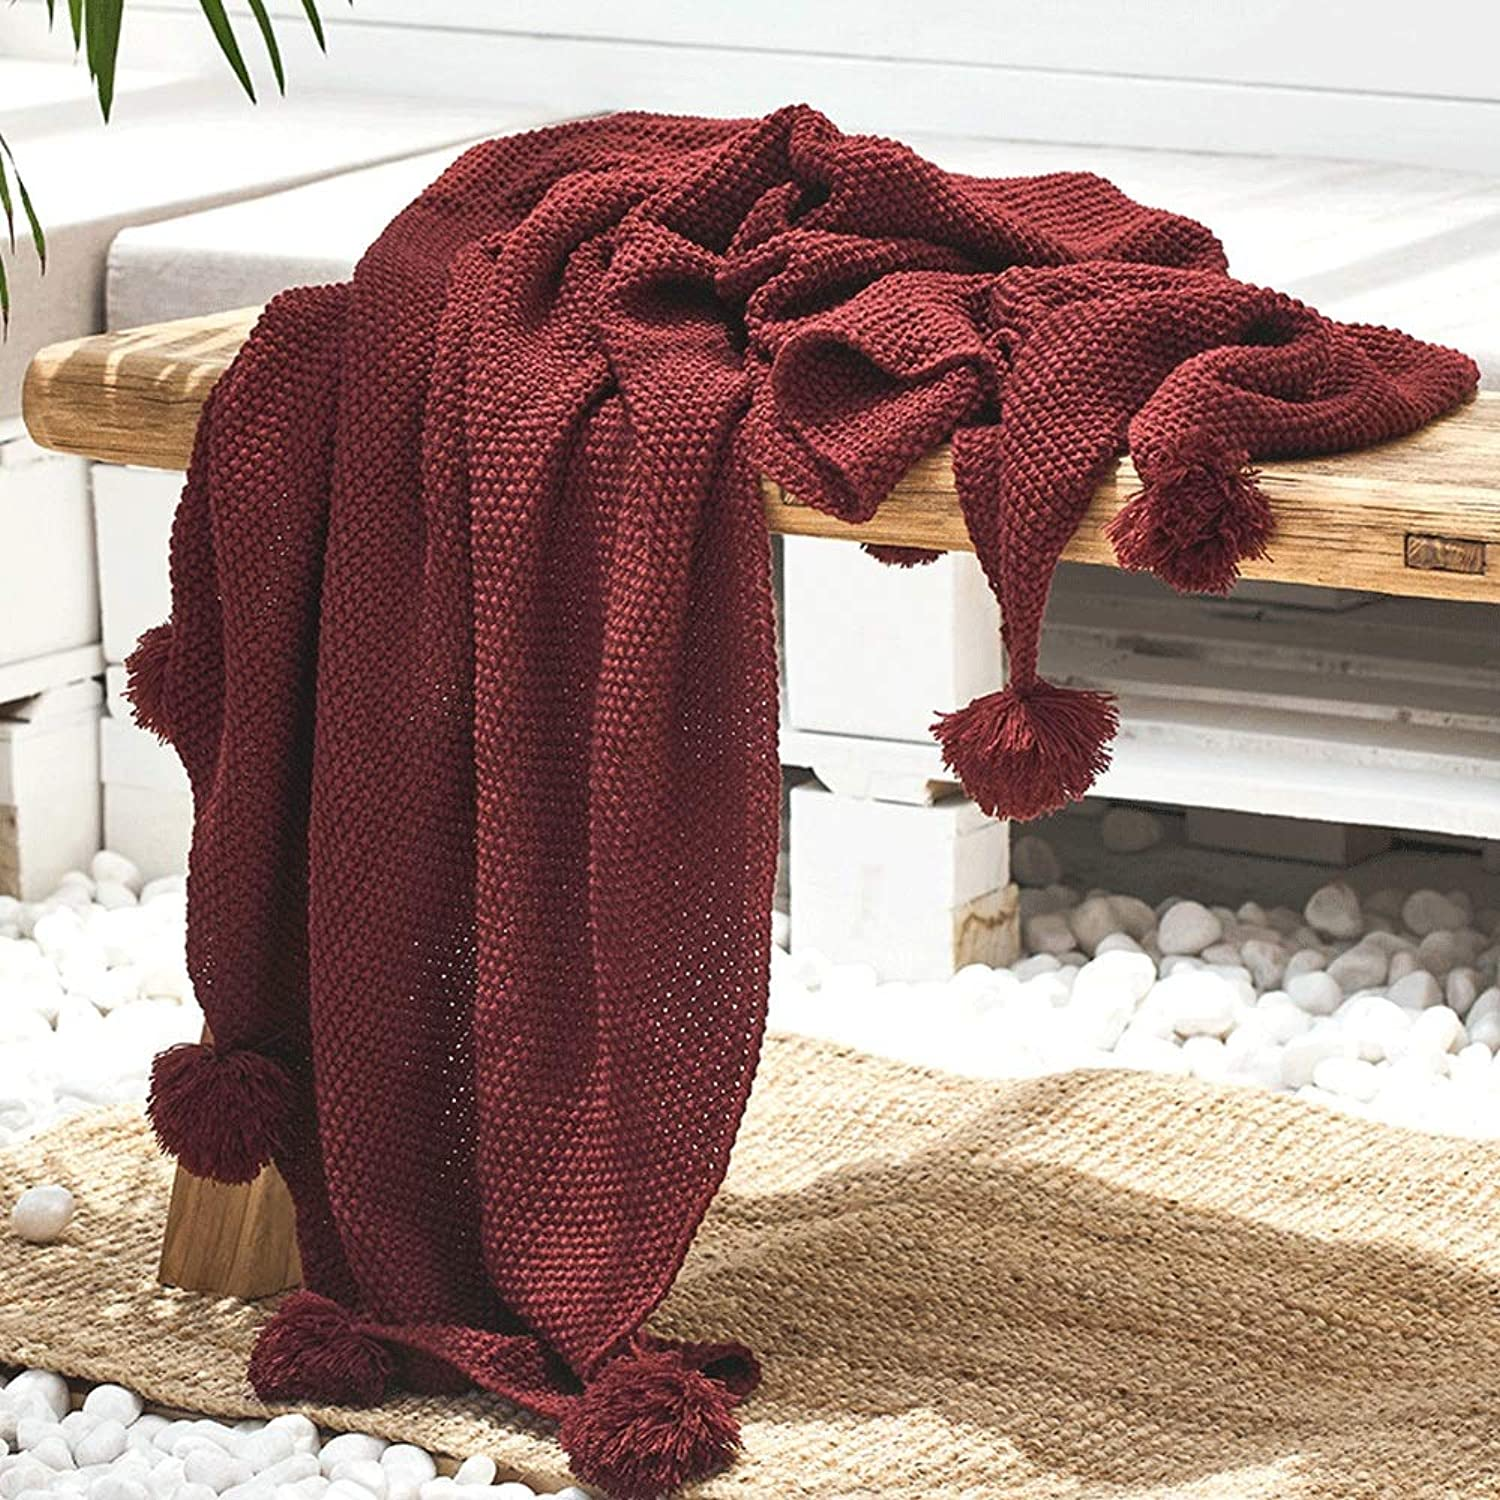 AUMING Mantas para sofás acogedora y Ligera Ropa de Cama Cable Knit Throw Manta for sofá Sillas Cama Beach 130cmx160cm (Color   Wine rojo, Talla   130cmx160cm)